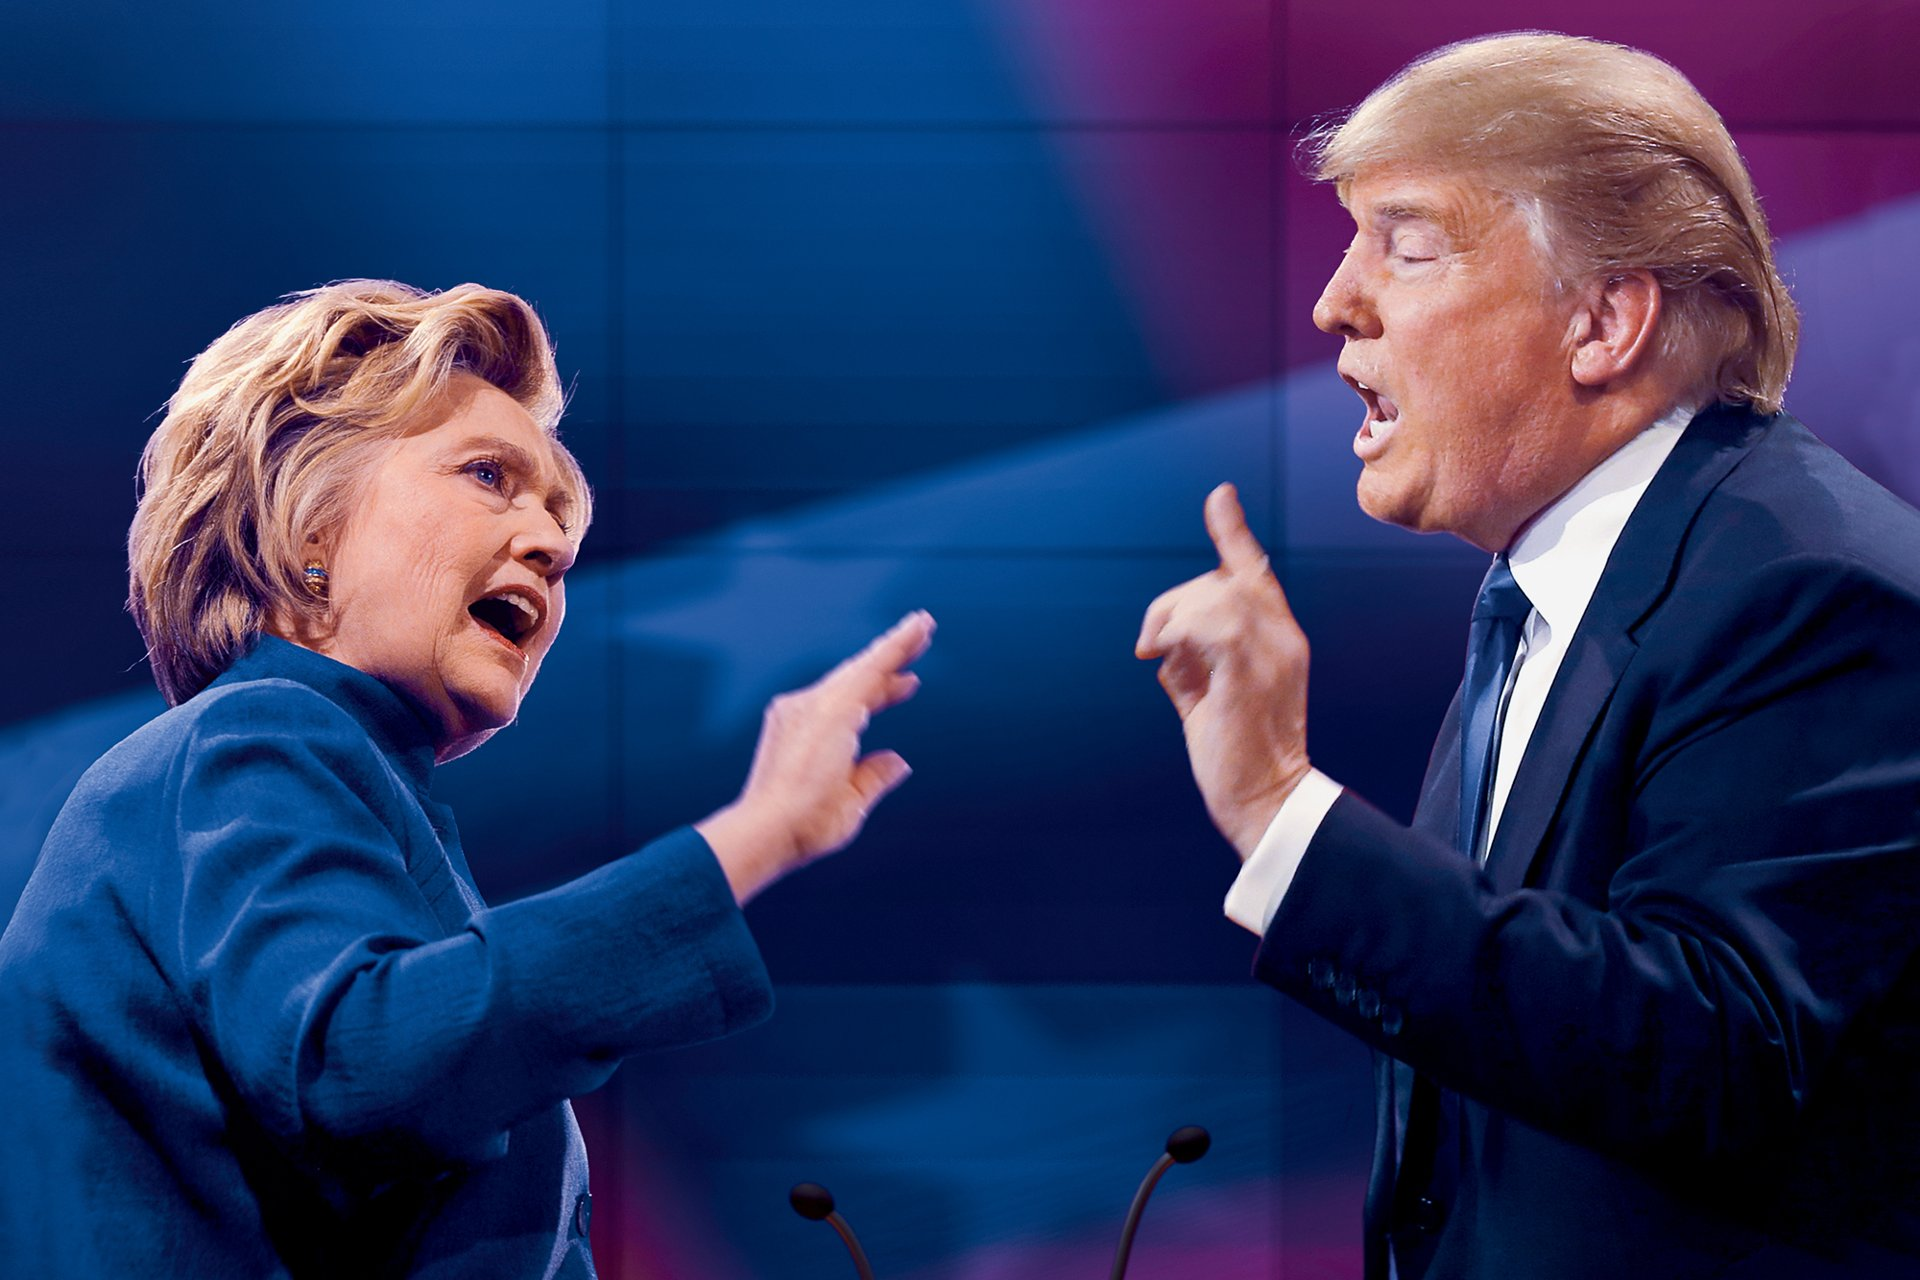 the debate Npr's politics team, with help from reporters and editors who cover national security, immigration, business, foreign policy and more, live annotated the debate portions of the debate.